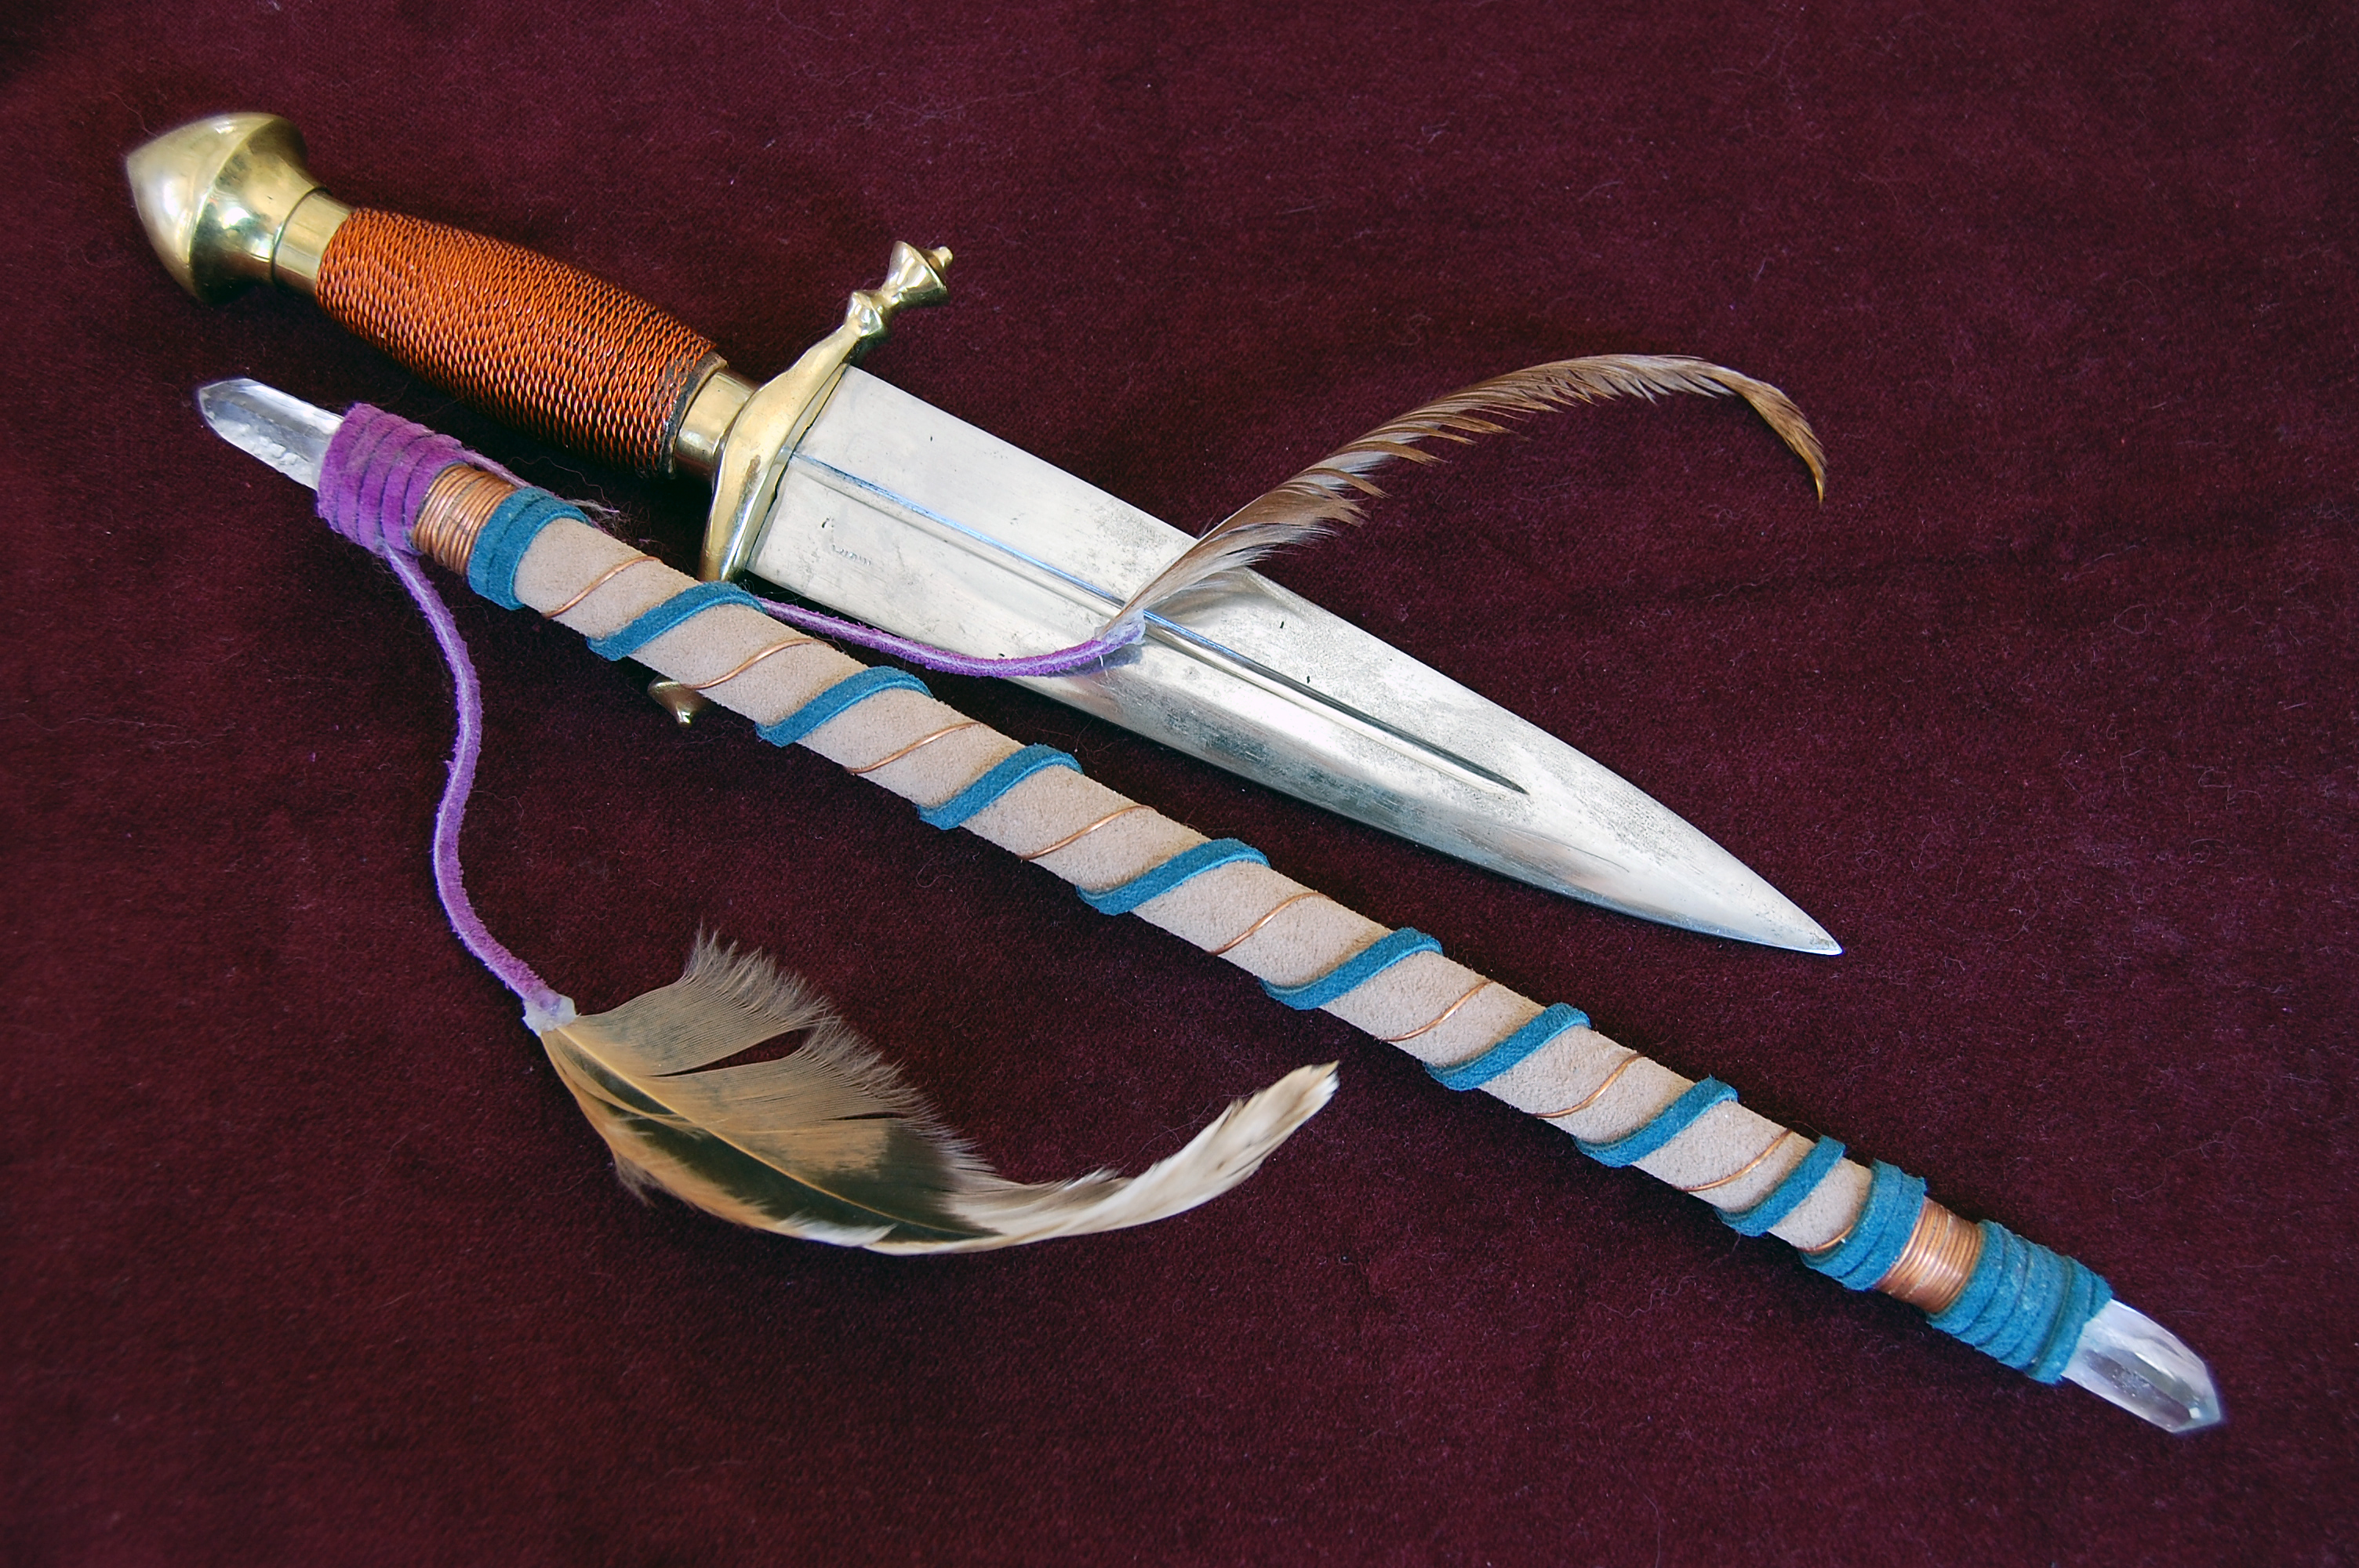 Athame Knife/Dagger, Its Meaning As A Symbol And Importance In Wicca